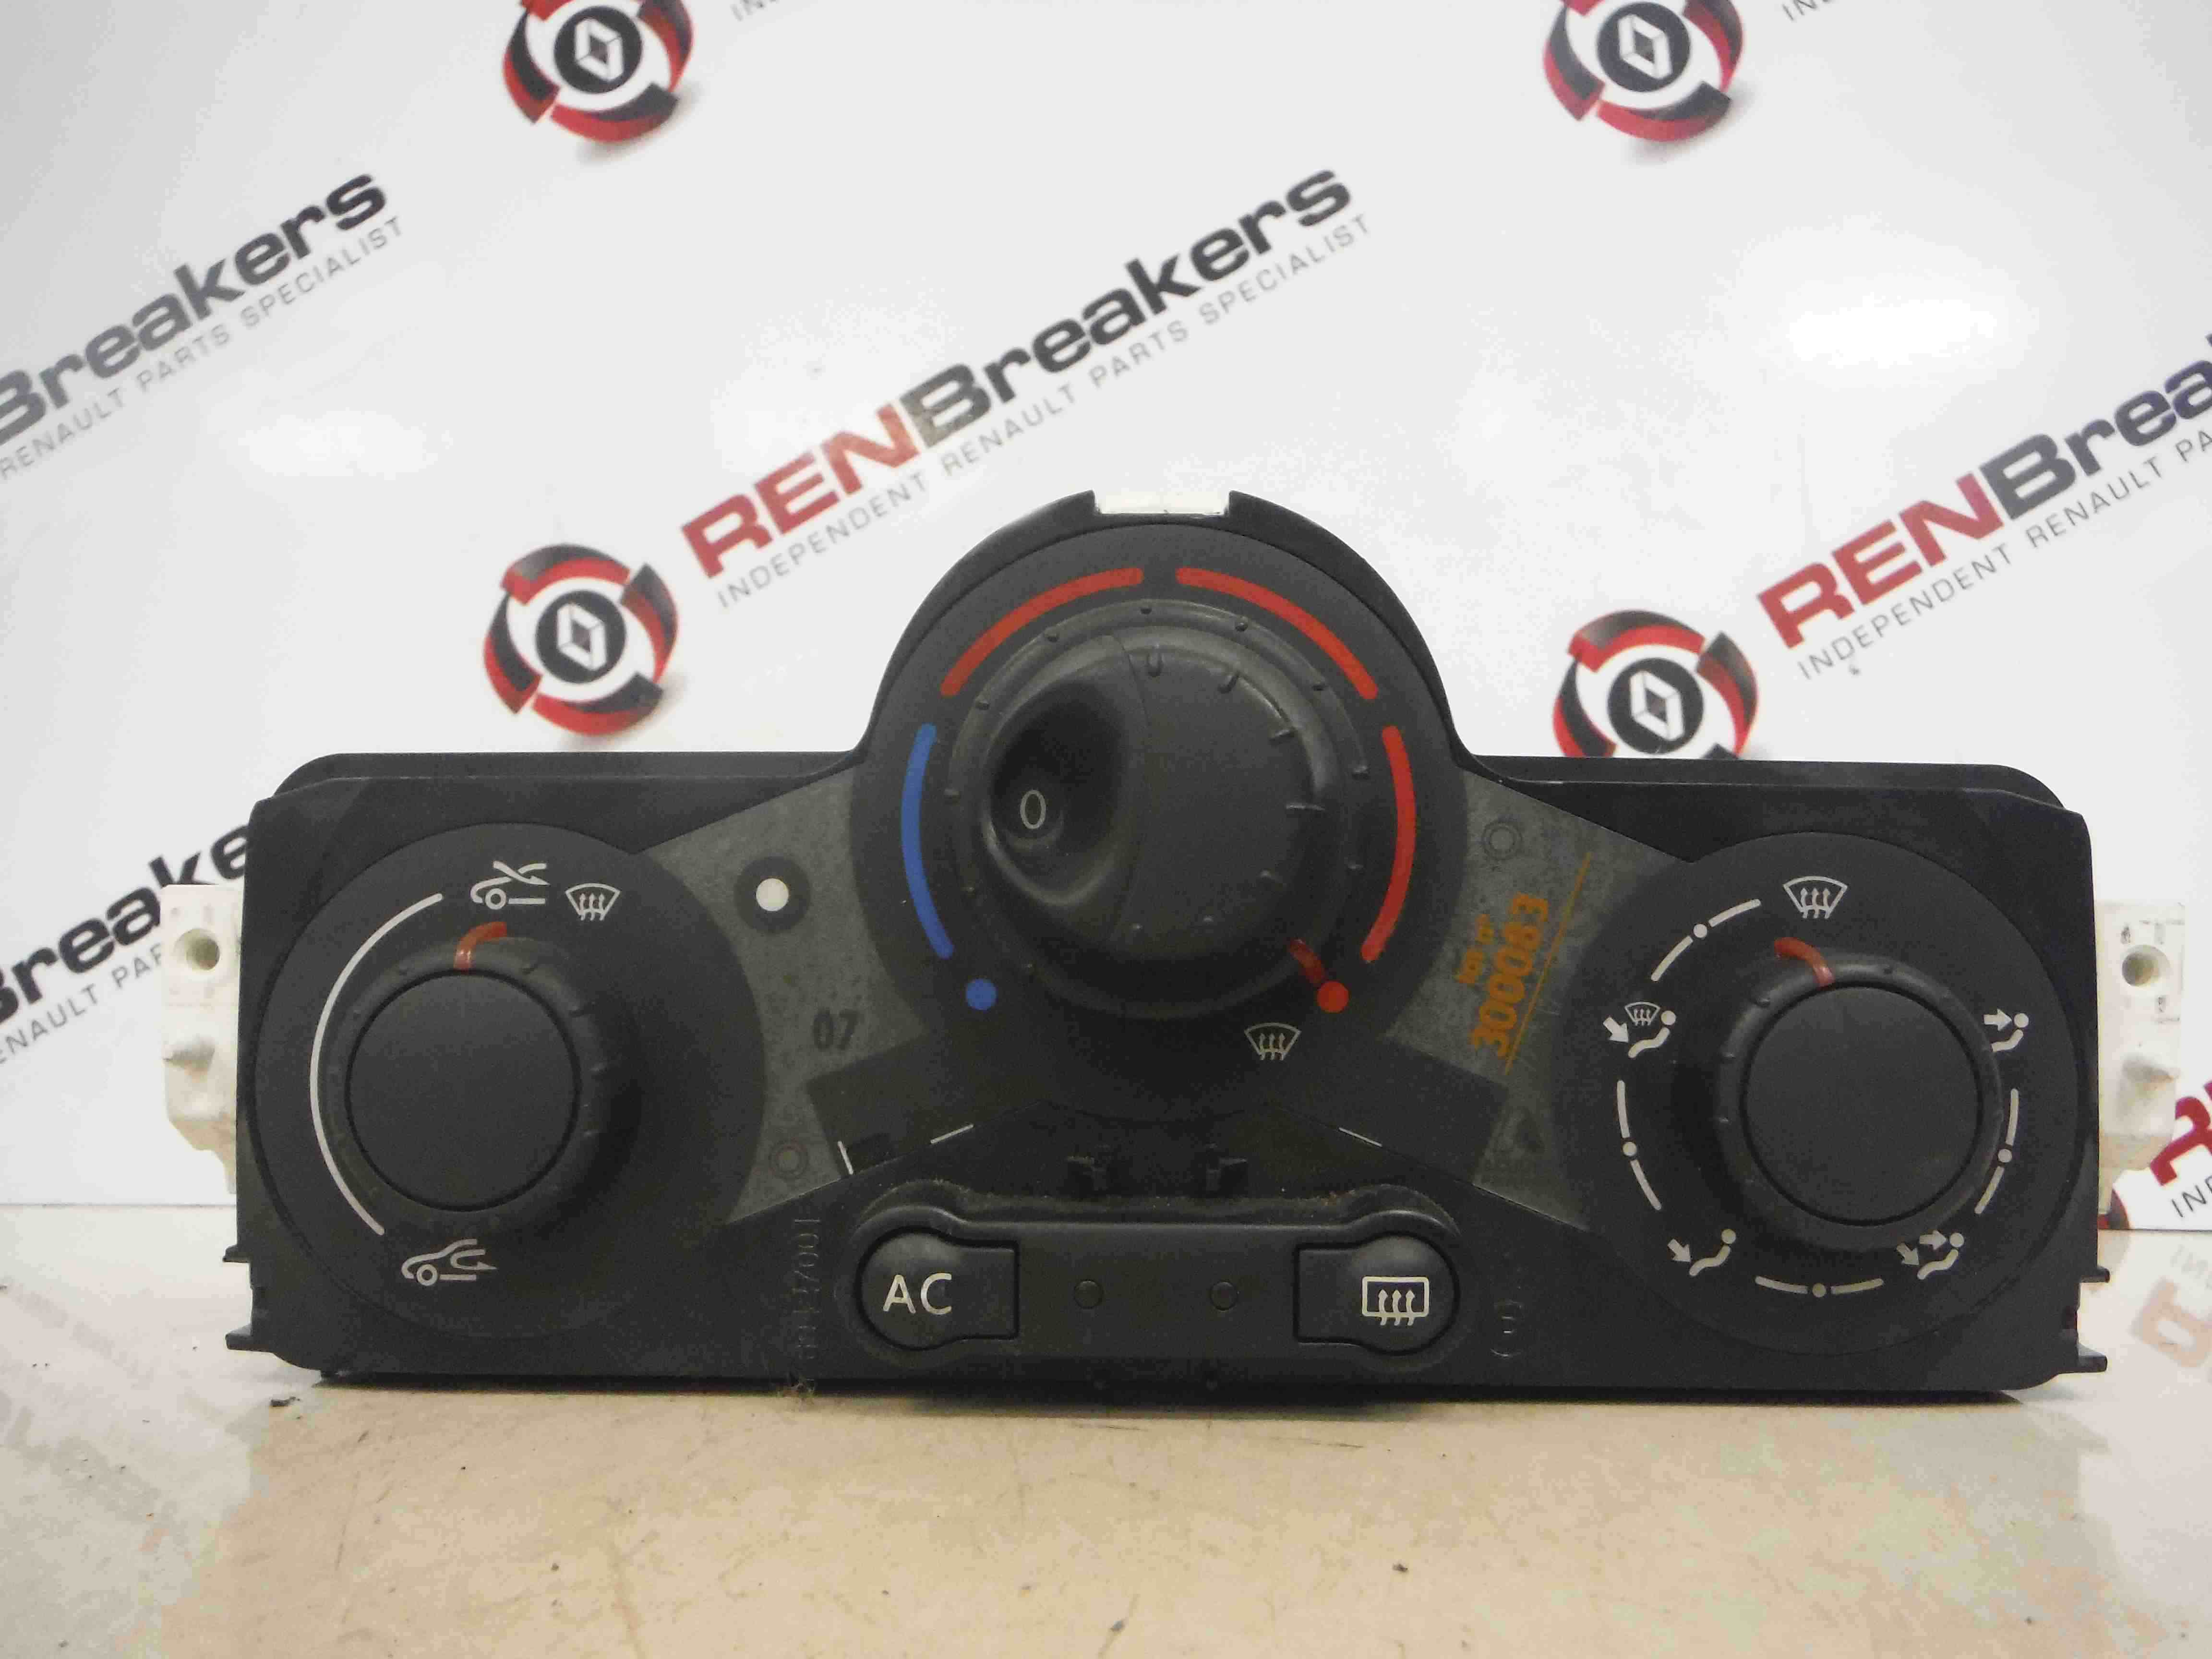 Renault Megane 2002-2008 Heater Controls Switch Dials Aircon 69420001 69420003